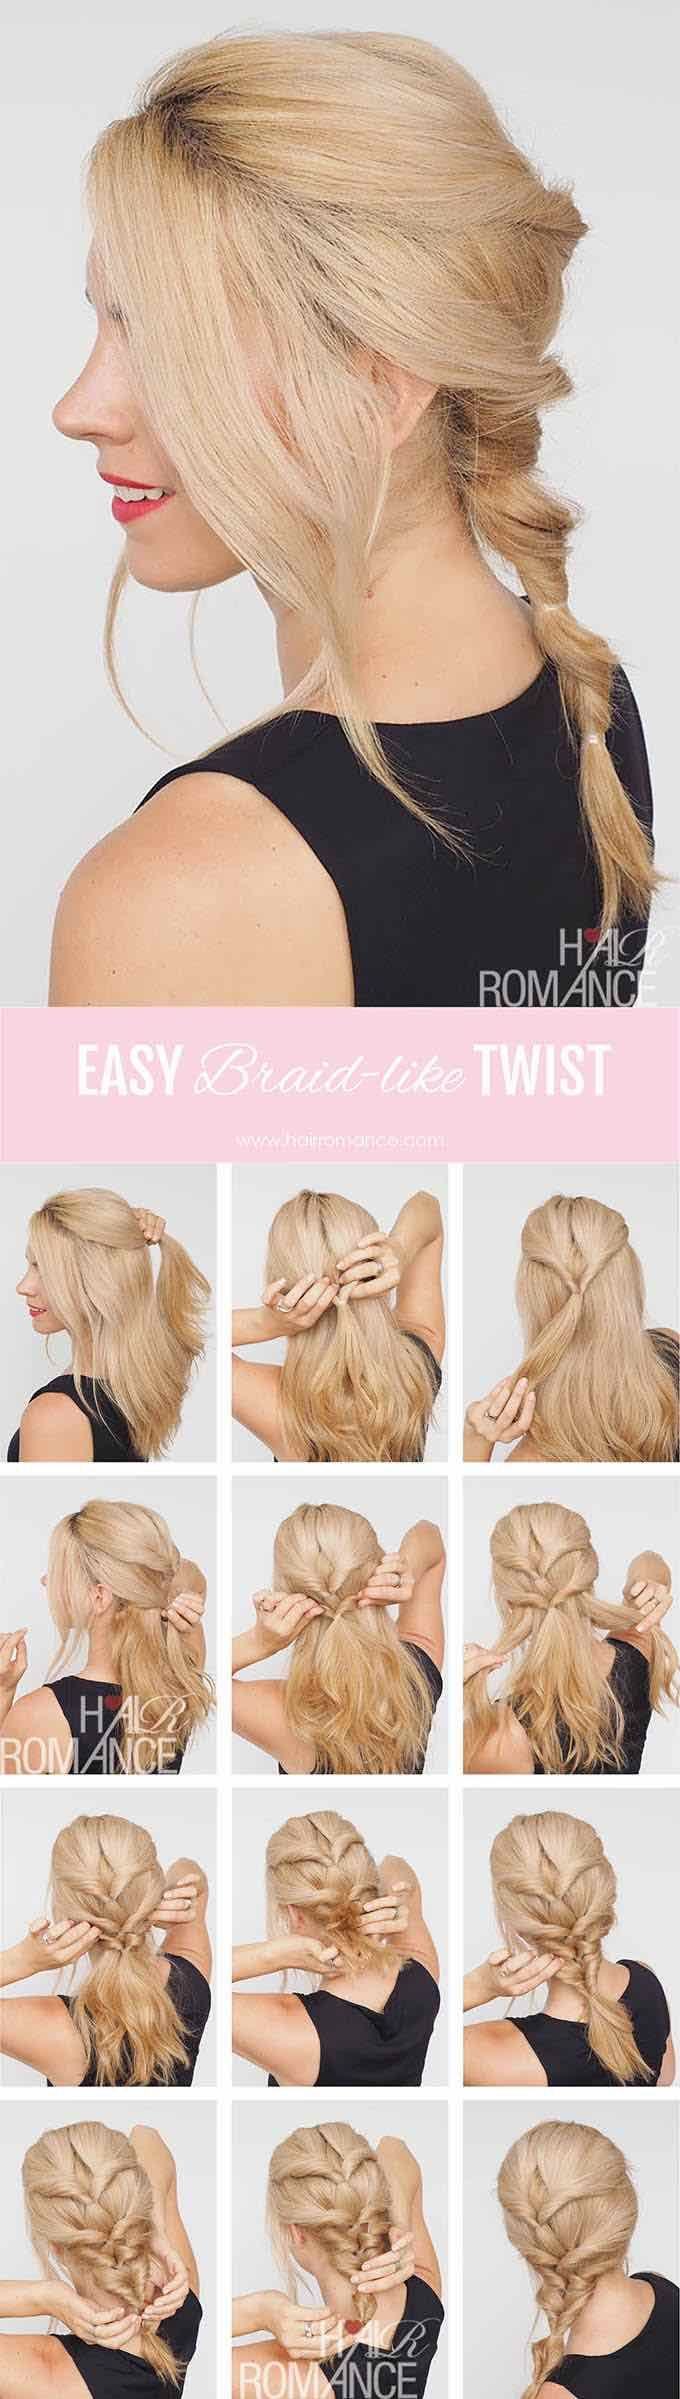 Half Up and Half Down Hairstyles for Prom - THE TWIST BRAID HAIRSTYLE TUTORIAL T...